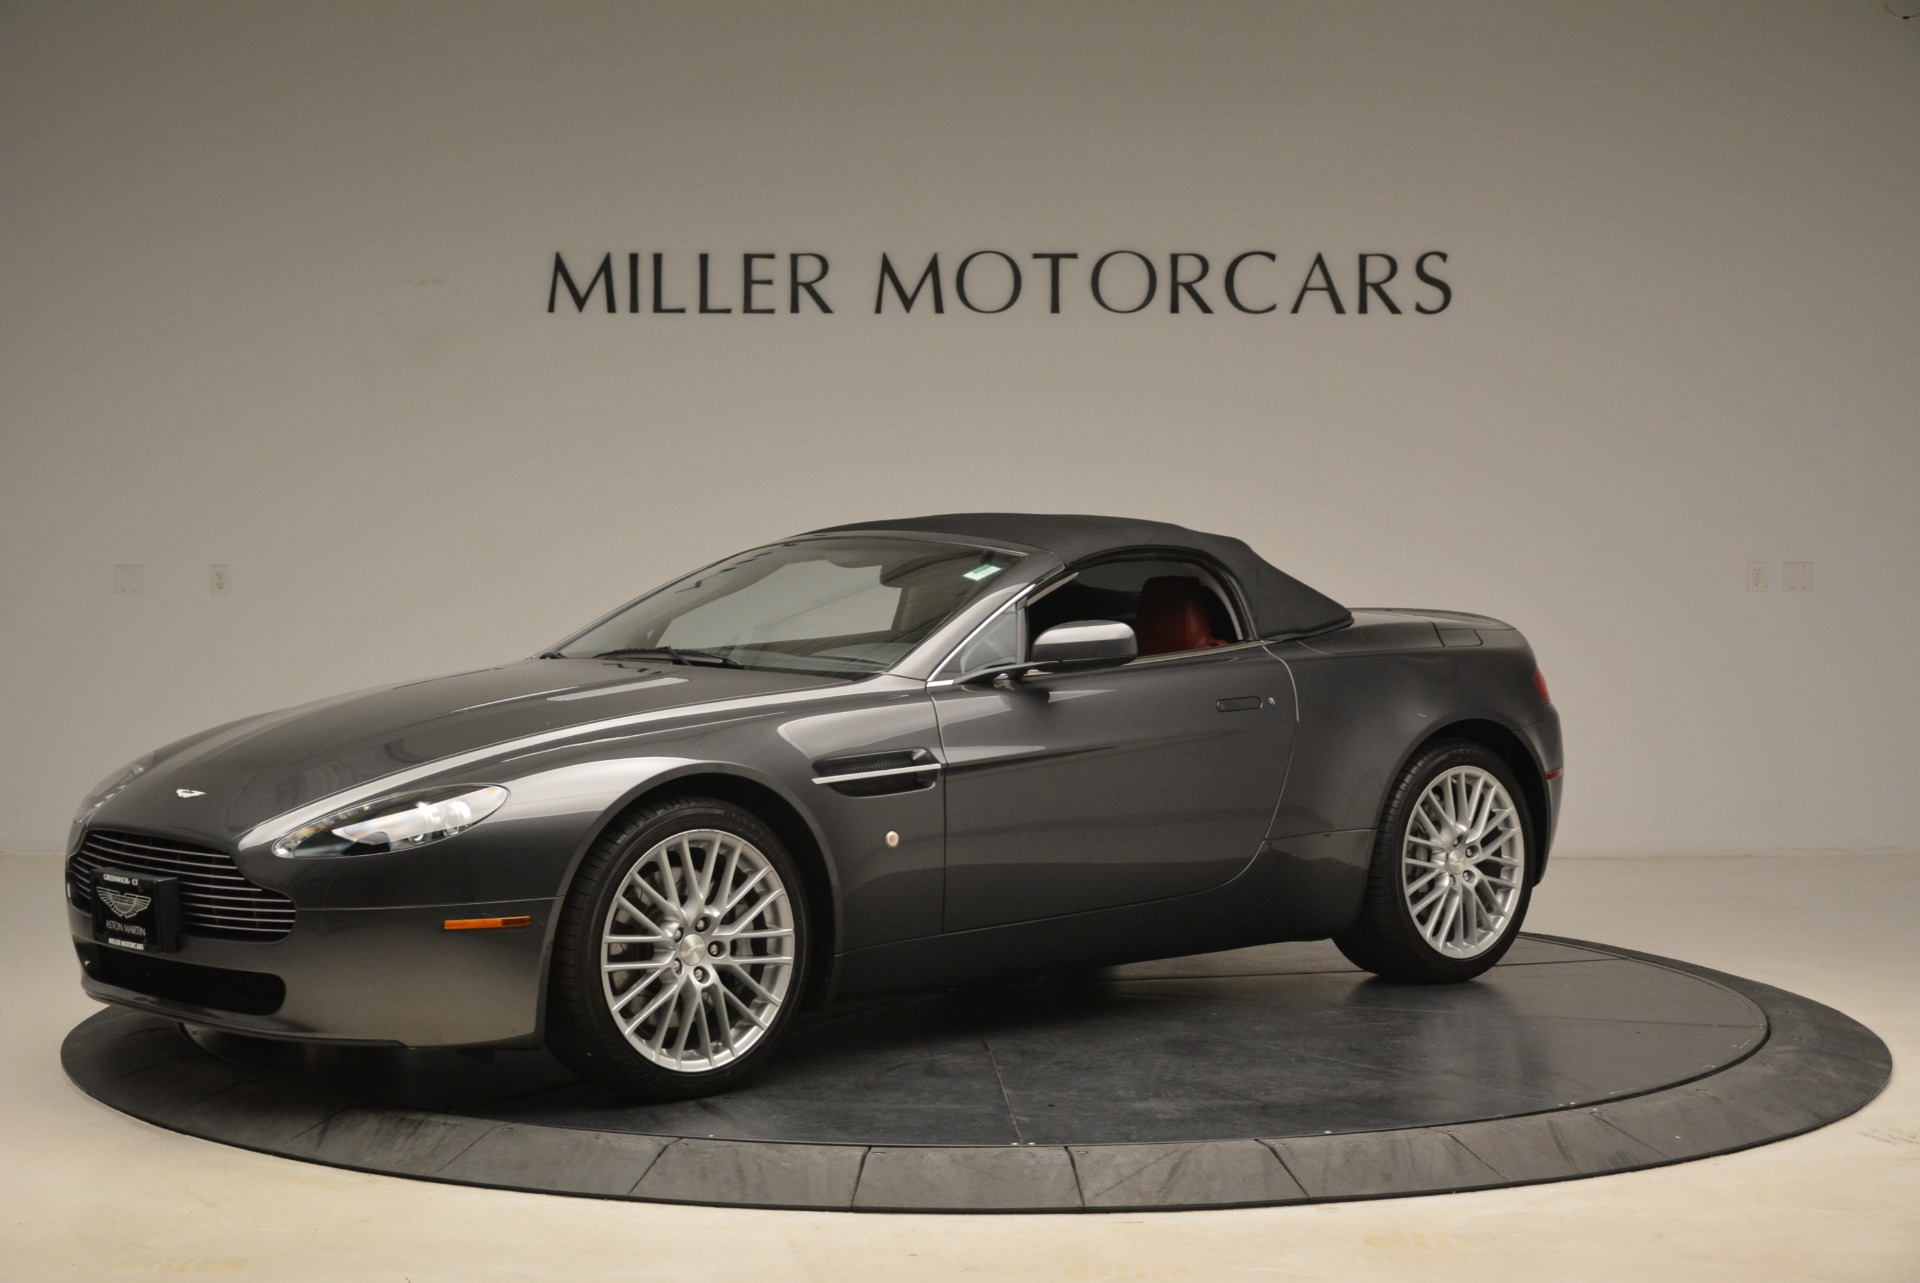 Used 2009 Aston Martin V8 Vantage Roadster For Sale In Greenwich, CT. Alfa Romeo of Greenwich, 7333 2123_p14